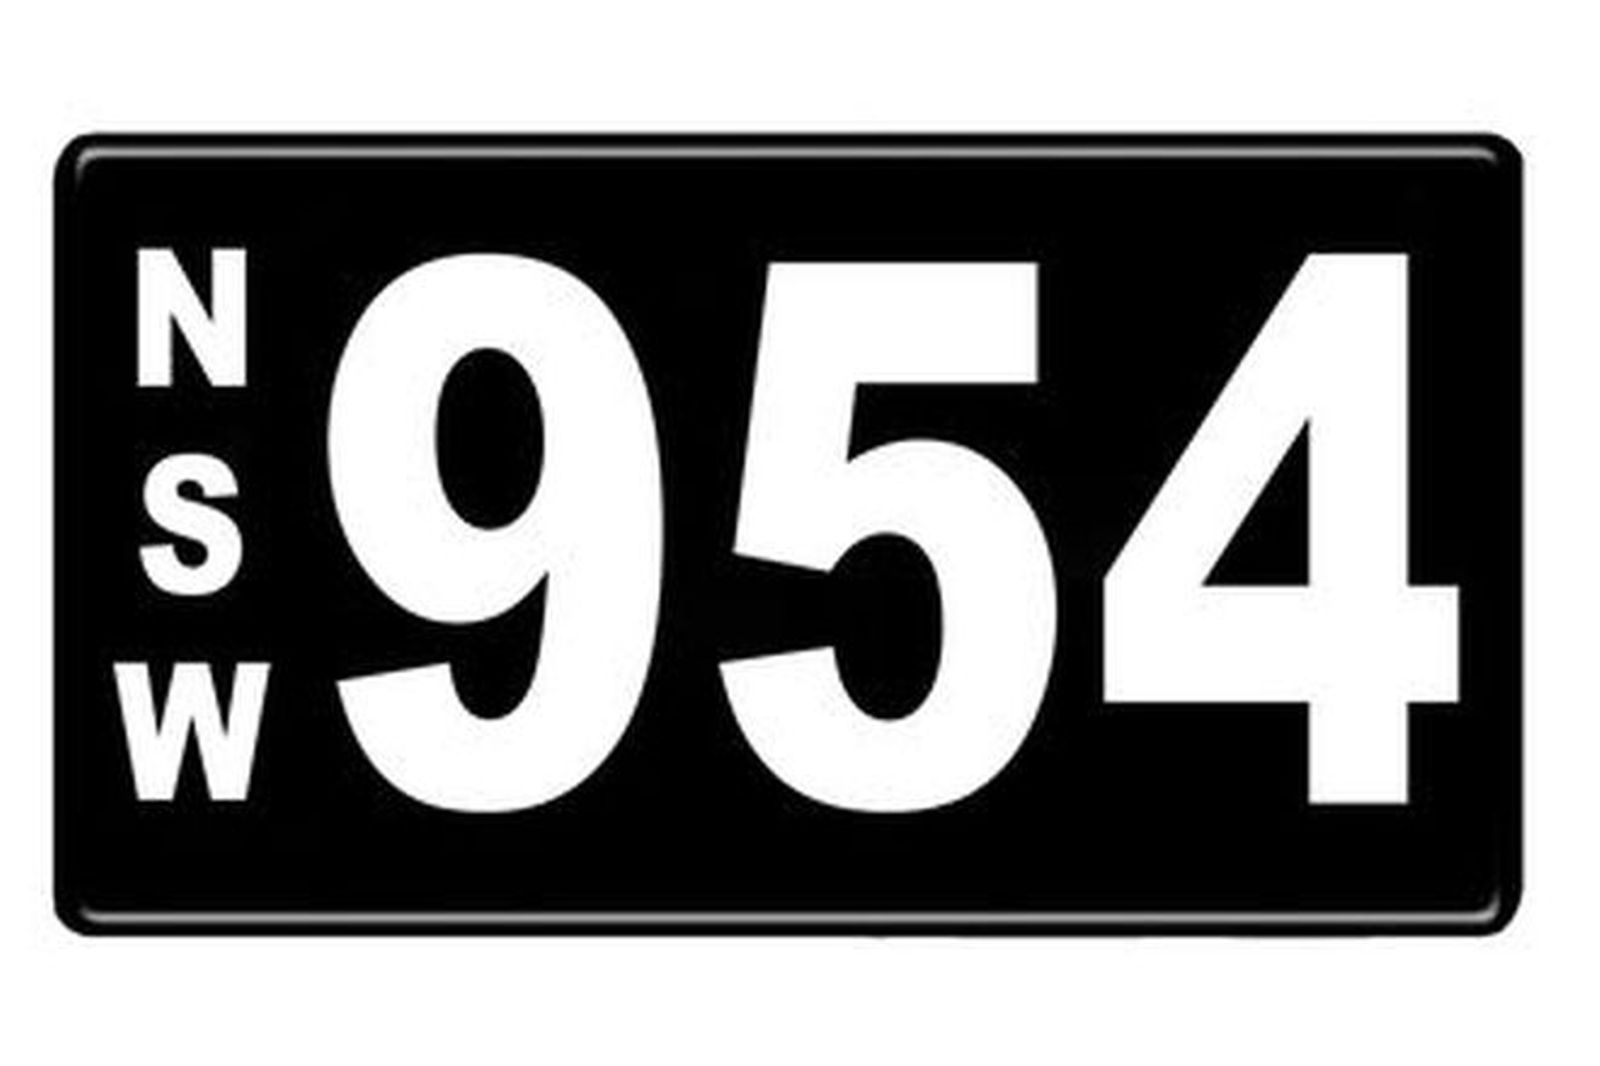 Number Plates - NSW Numerical Number Plates '954'